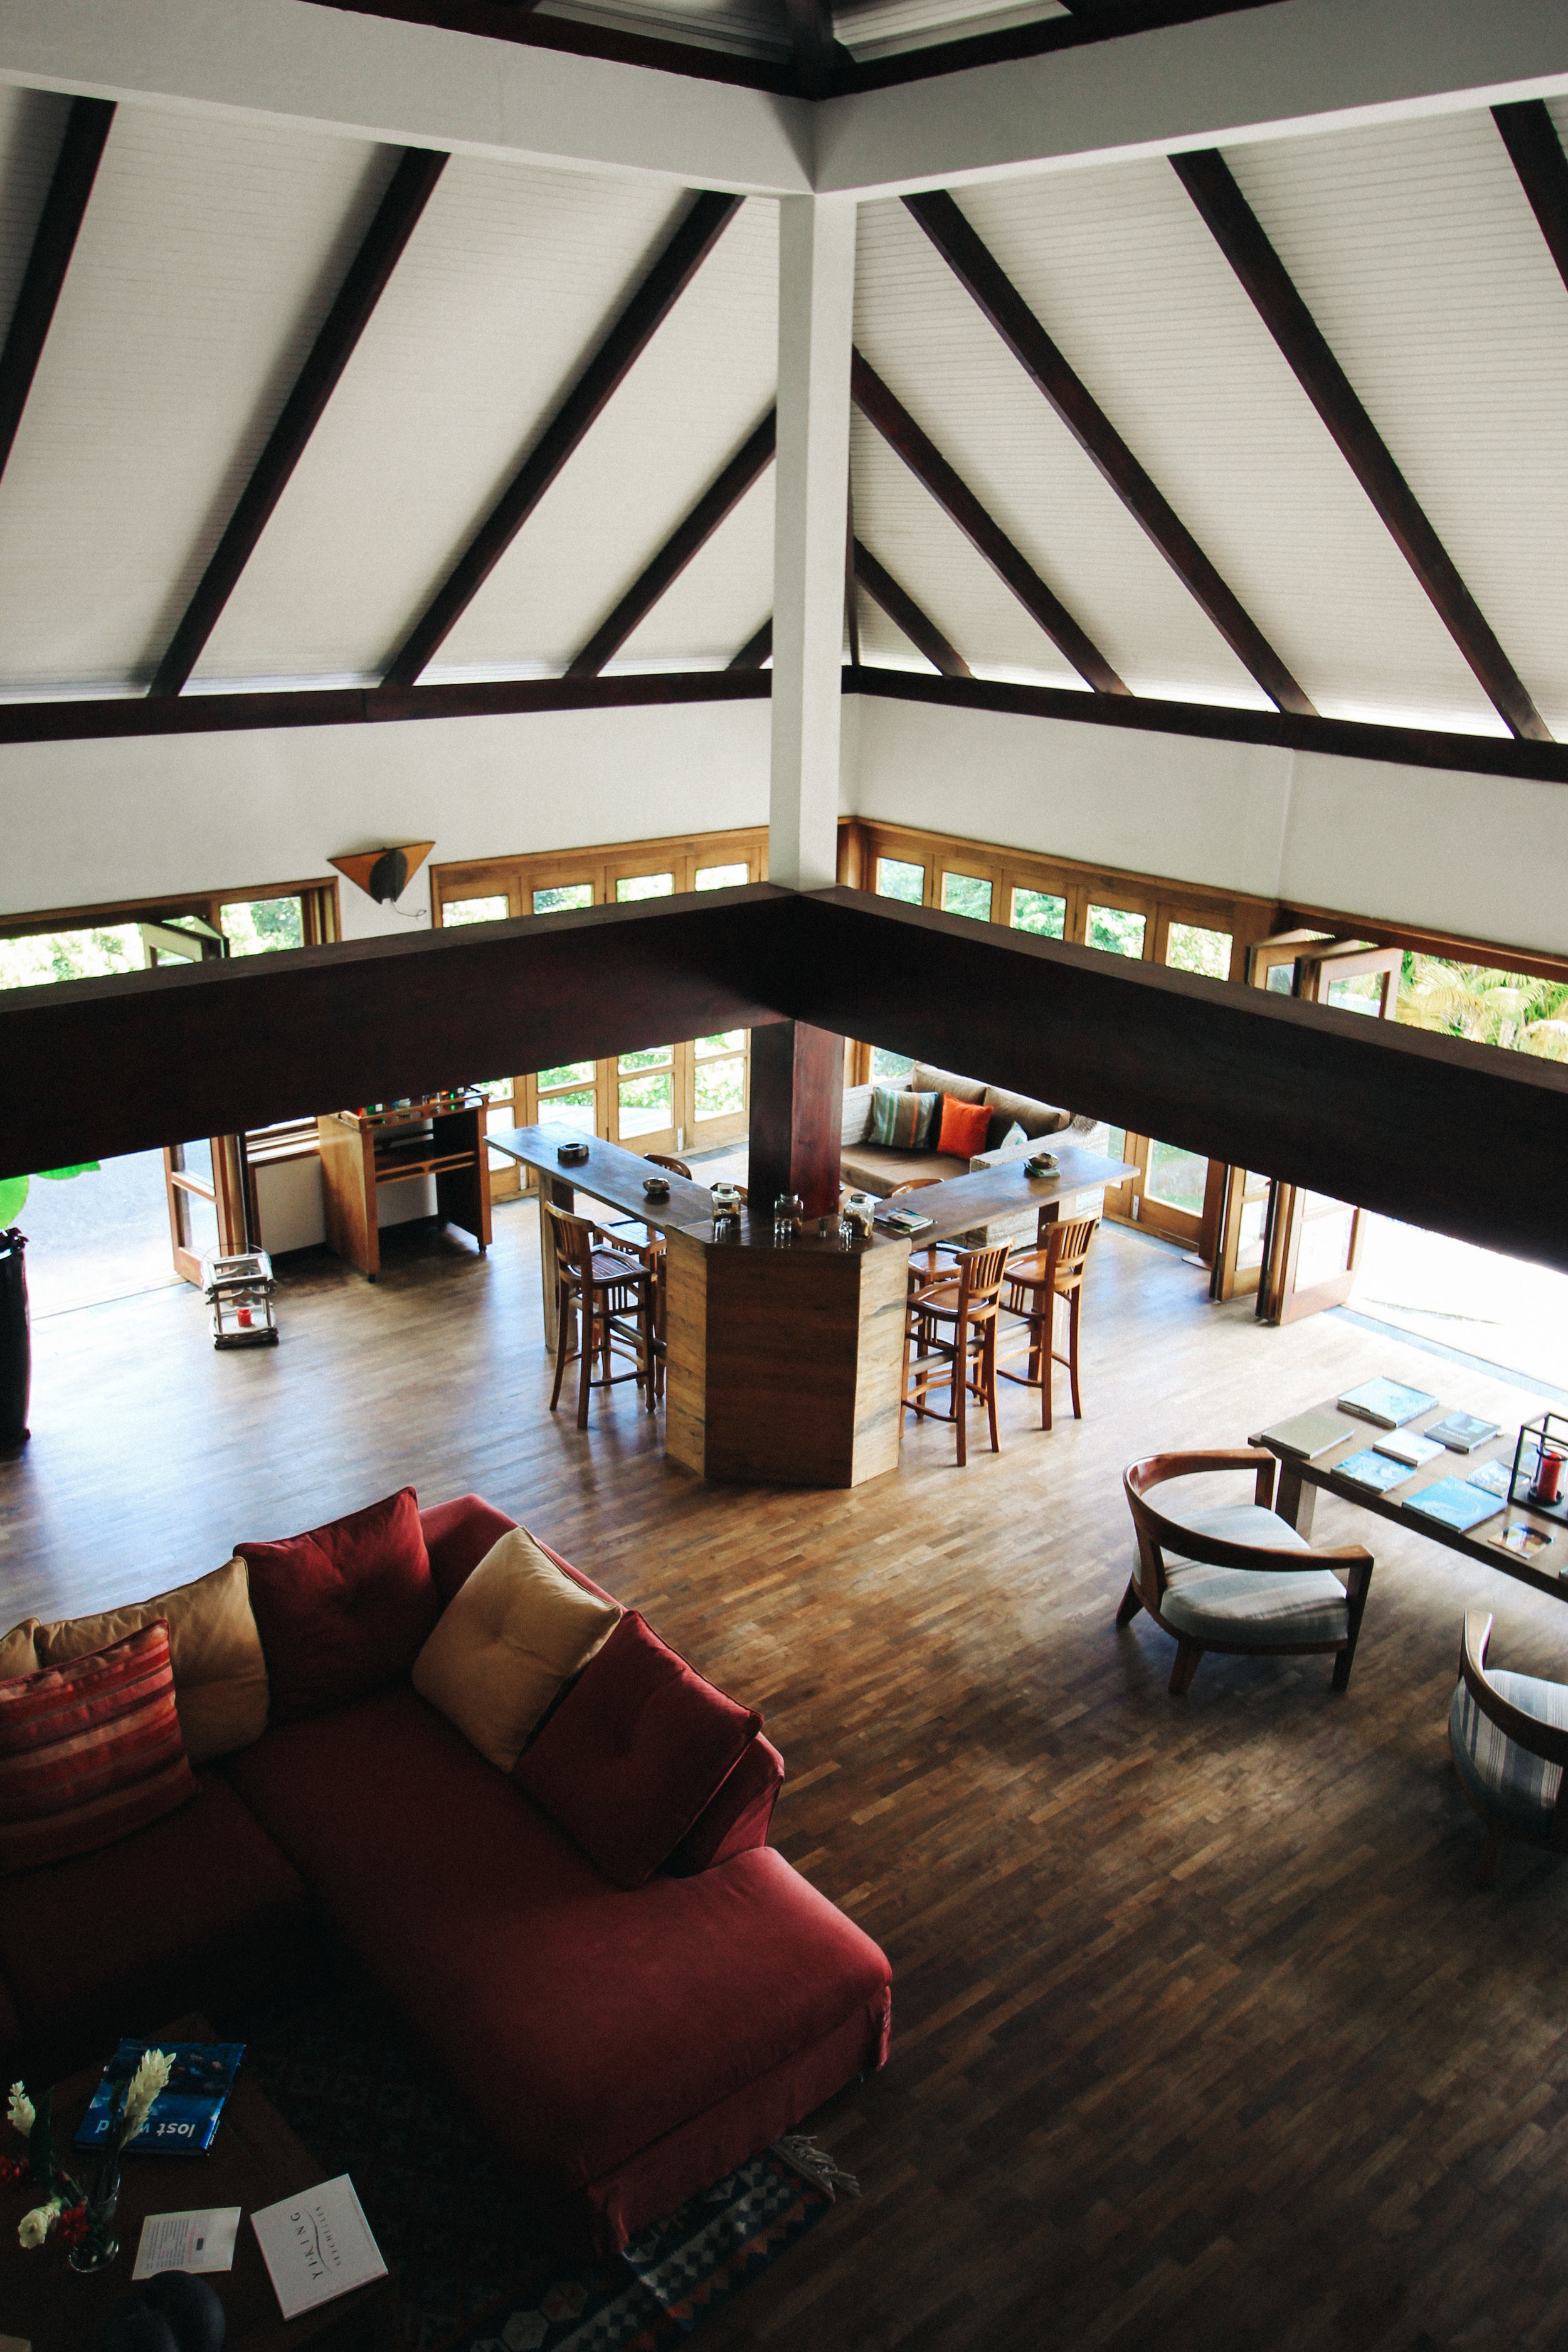 The common area at Copolia Lodge